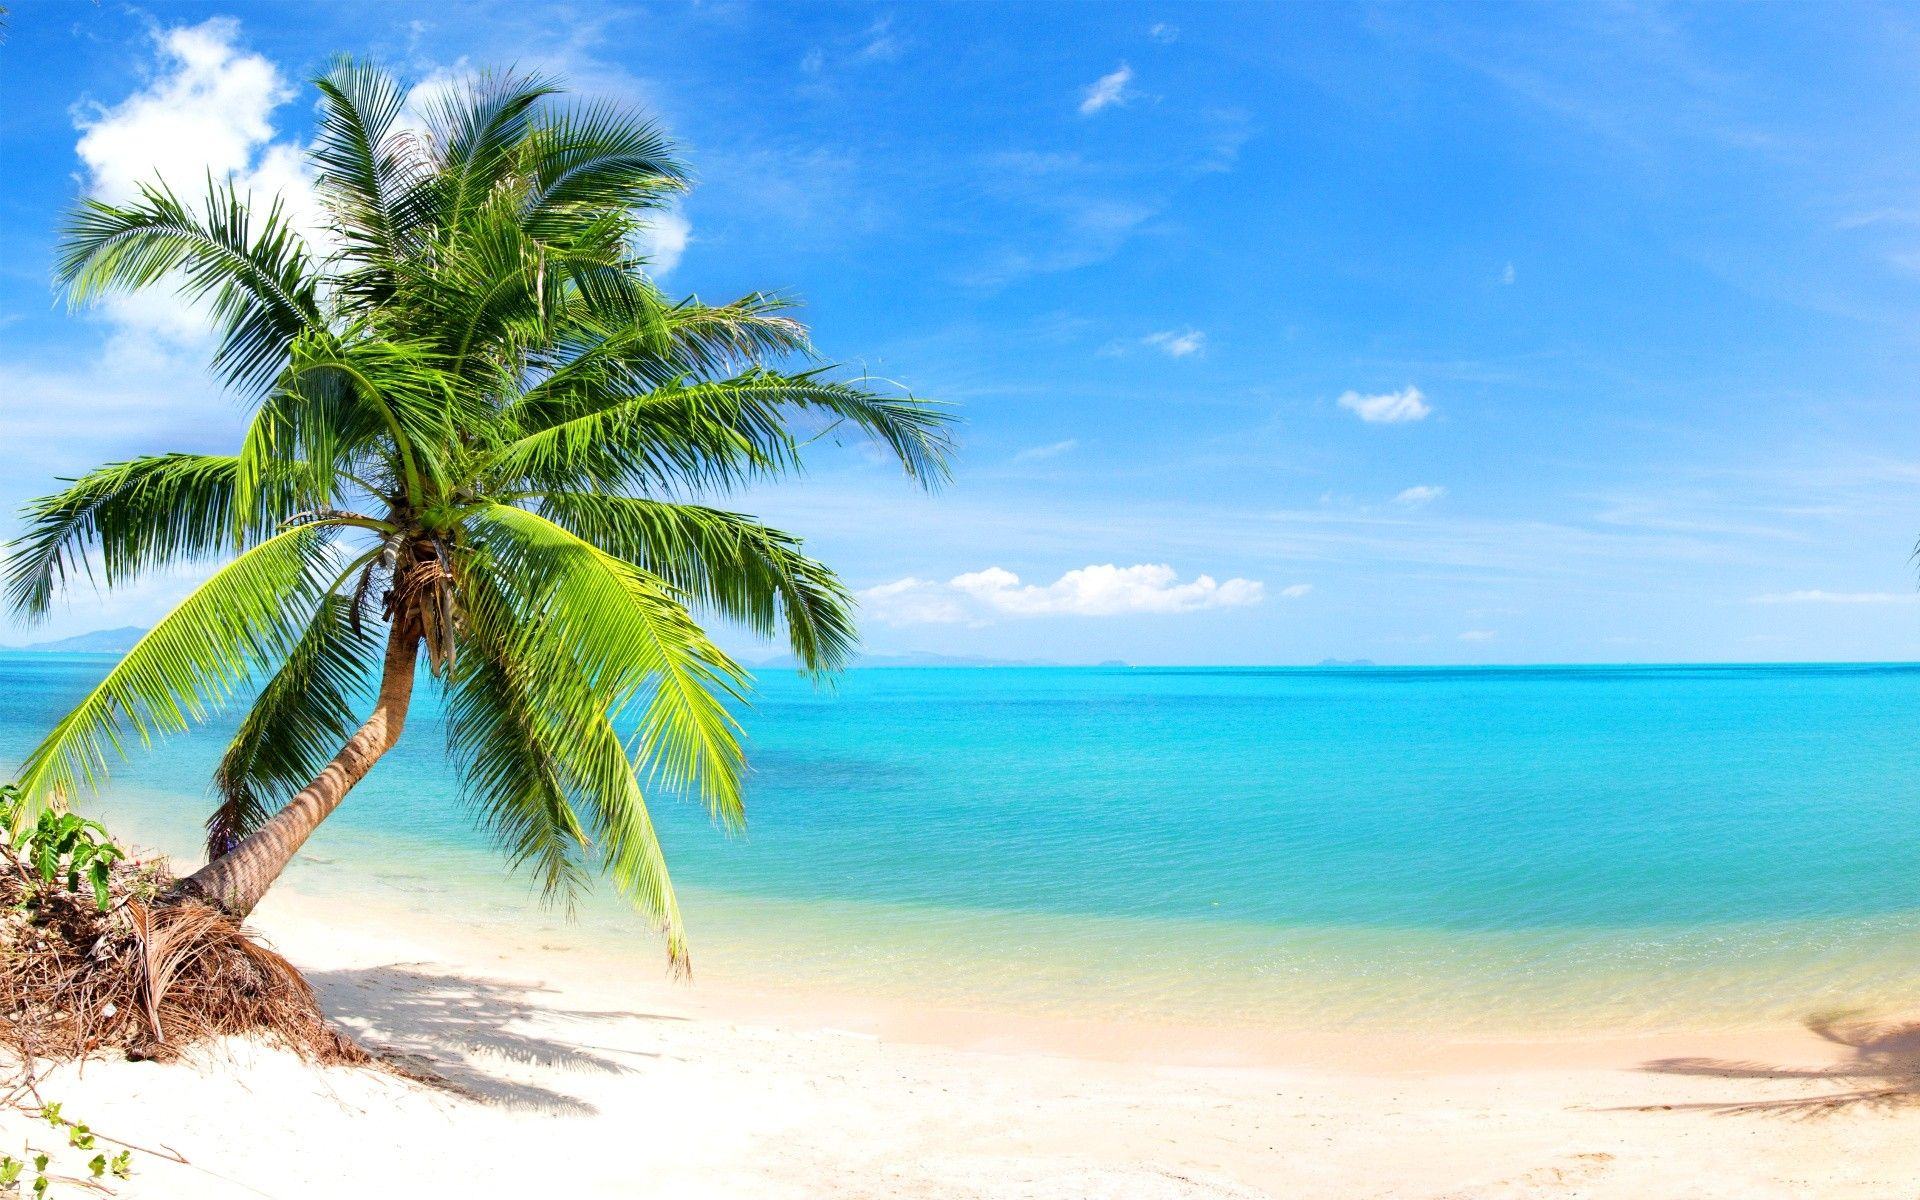 Download Tropical Beaches With Palm Trees S Wallpapers